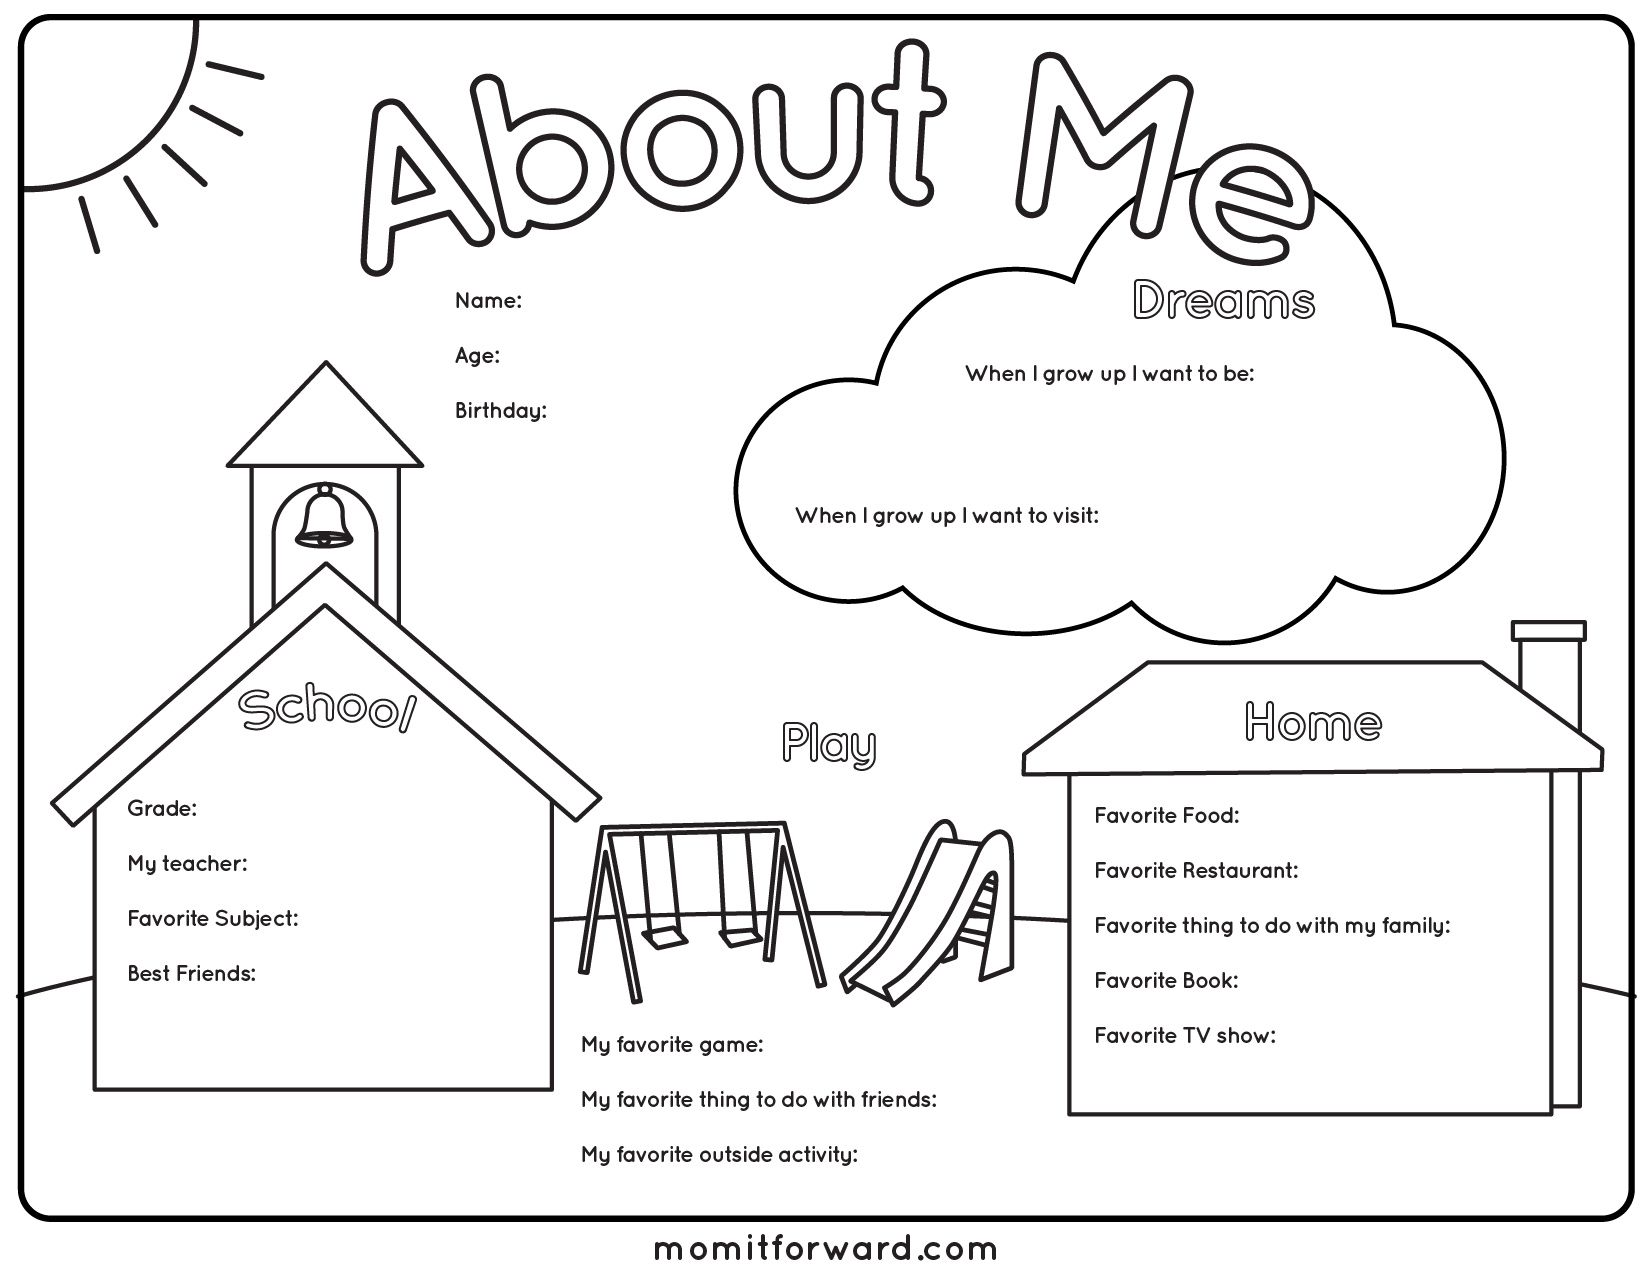 About Me Printable All about me preschool, Family